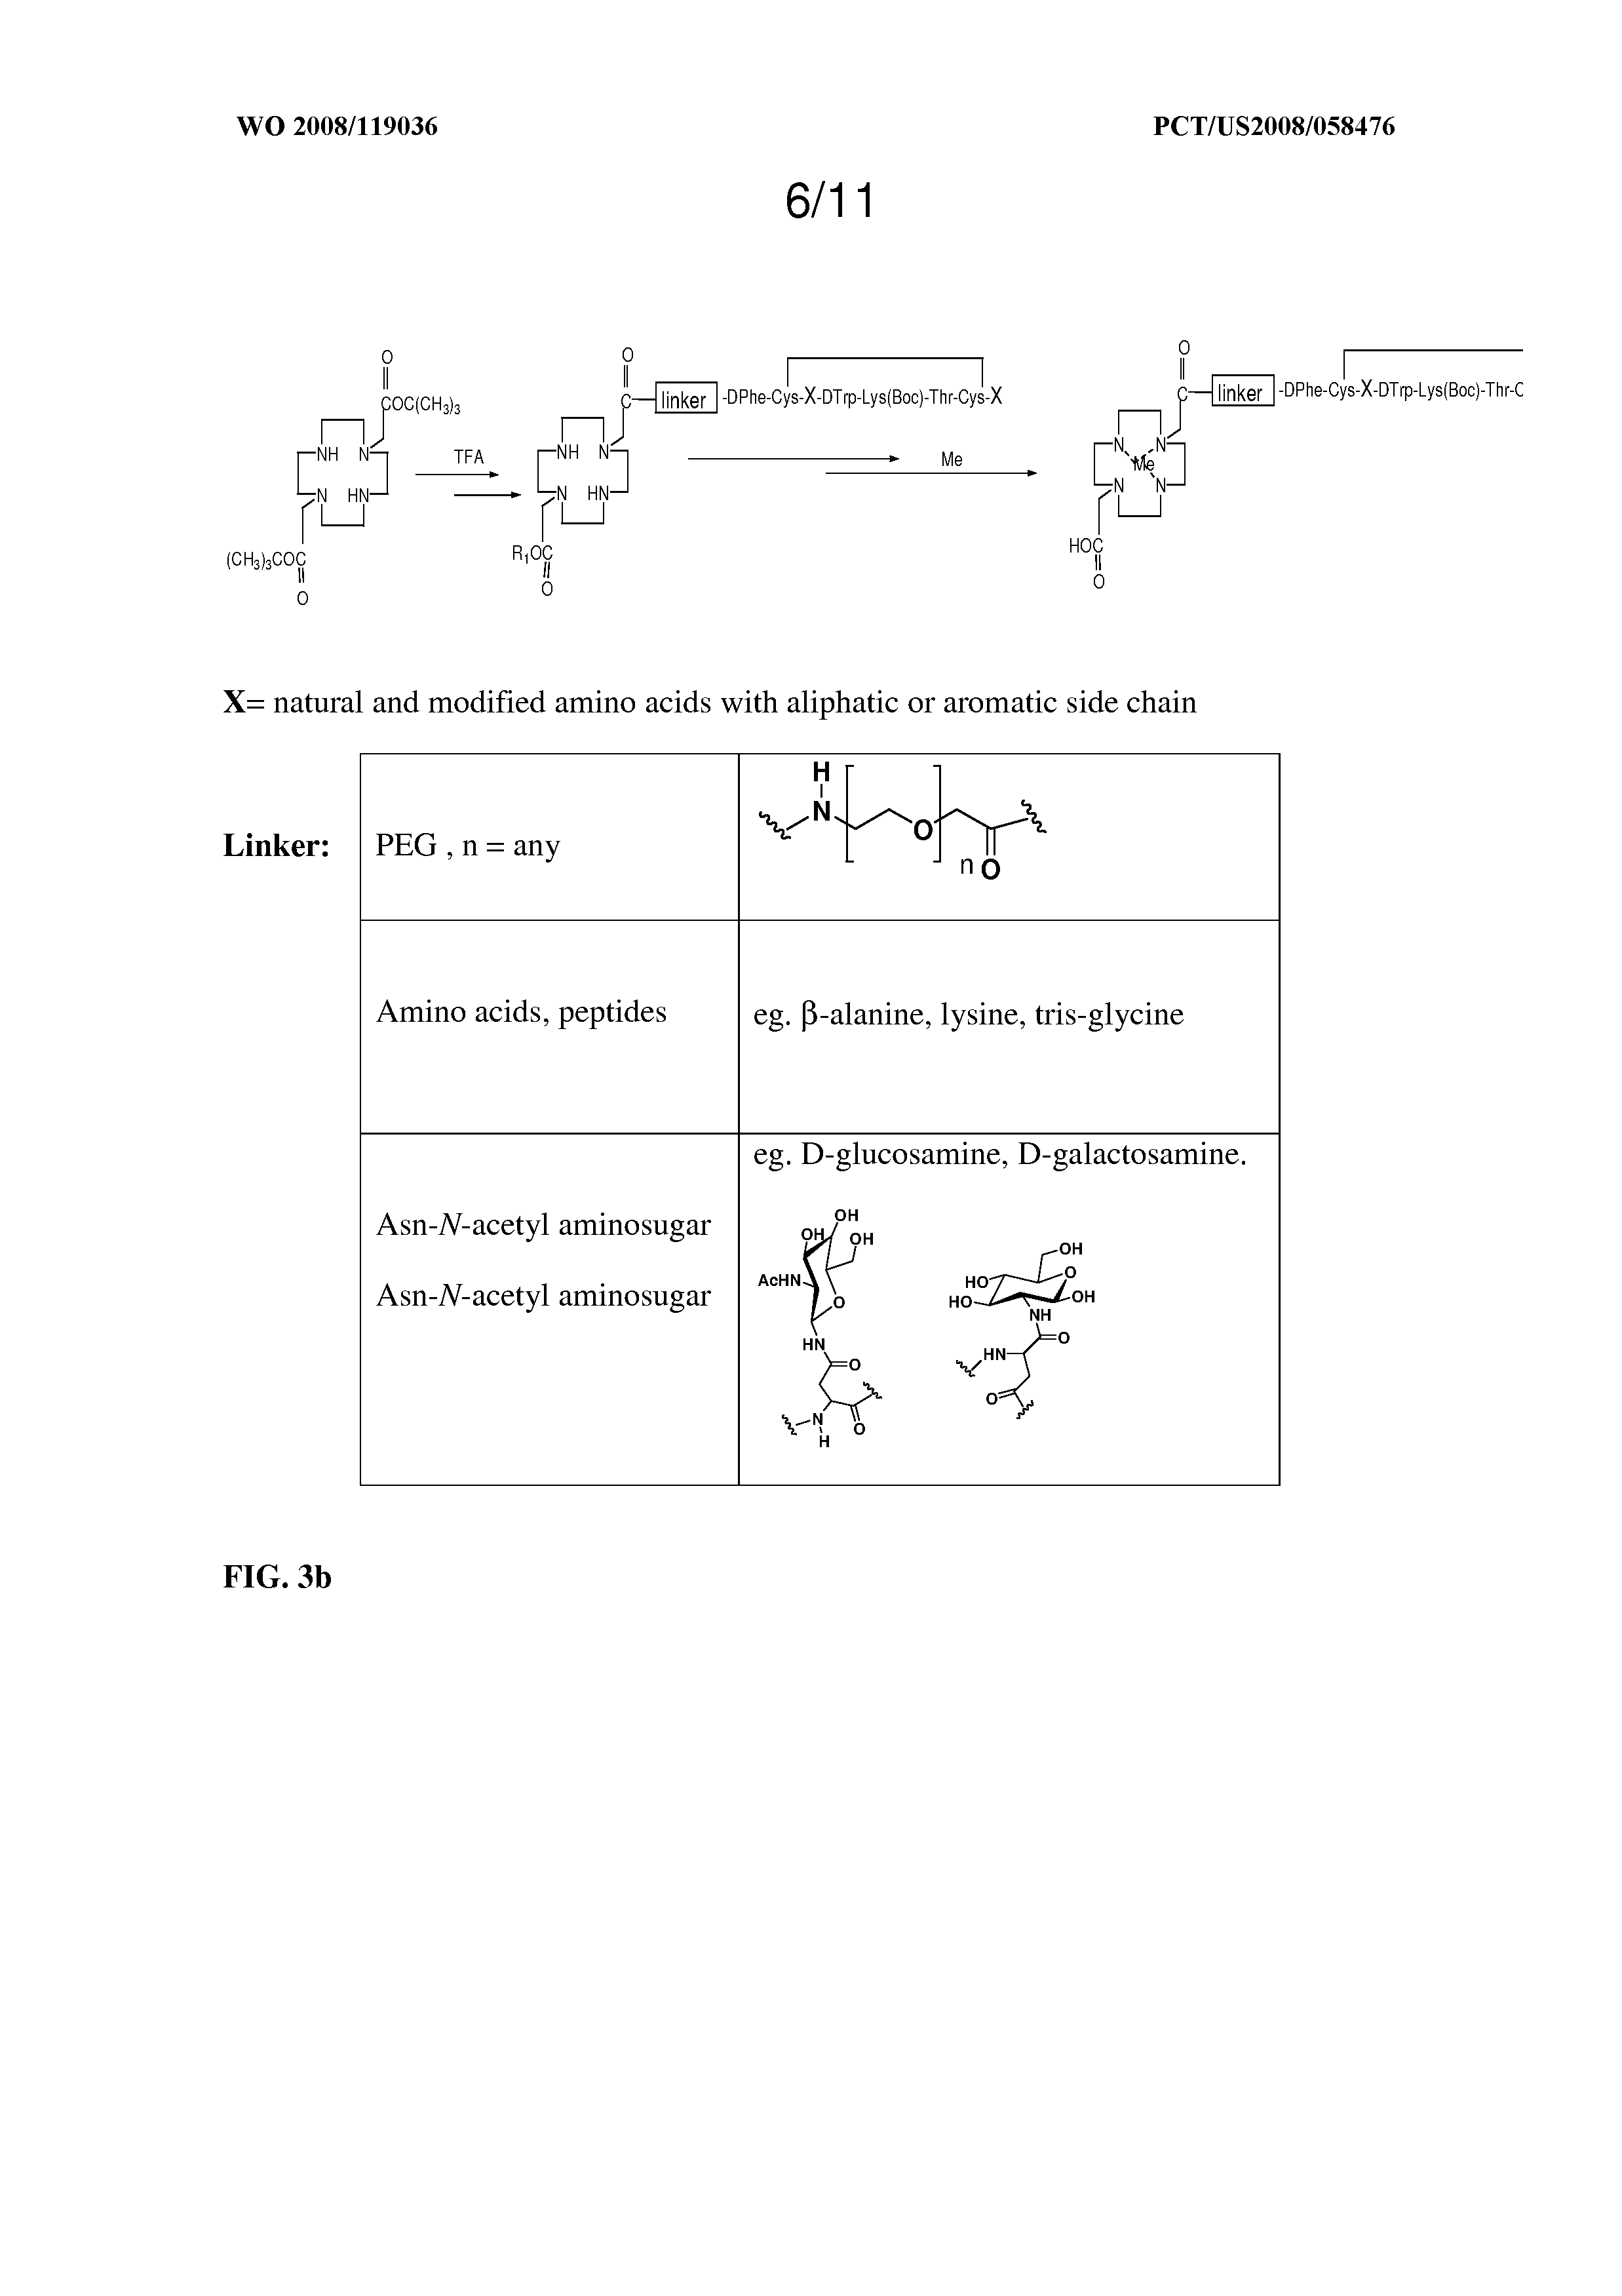 WO 2008/119036 A2 - Compositions For Targeted Imaging And